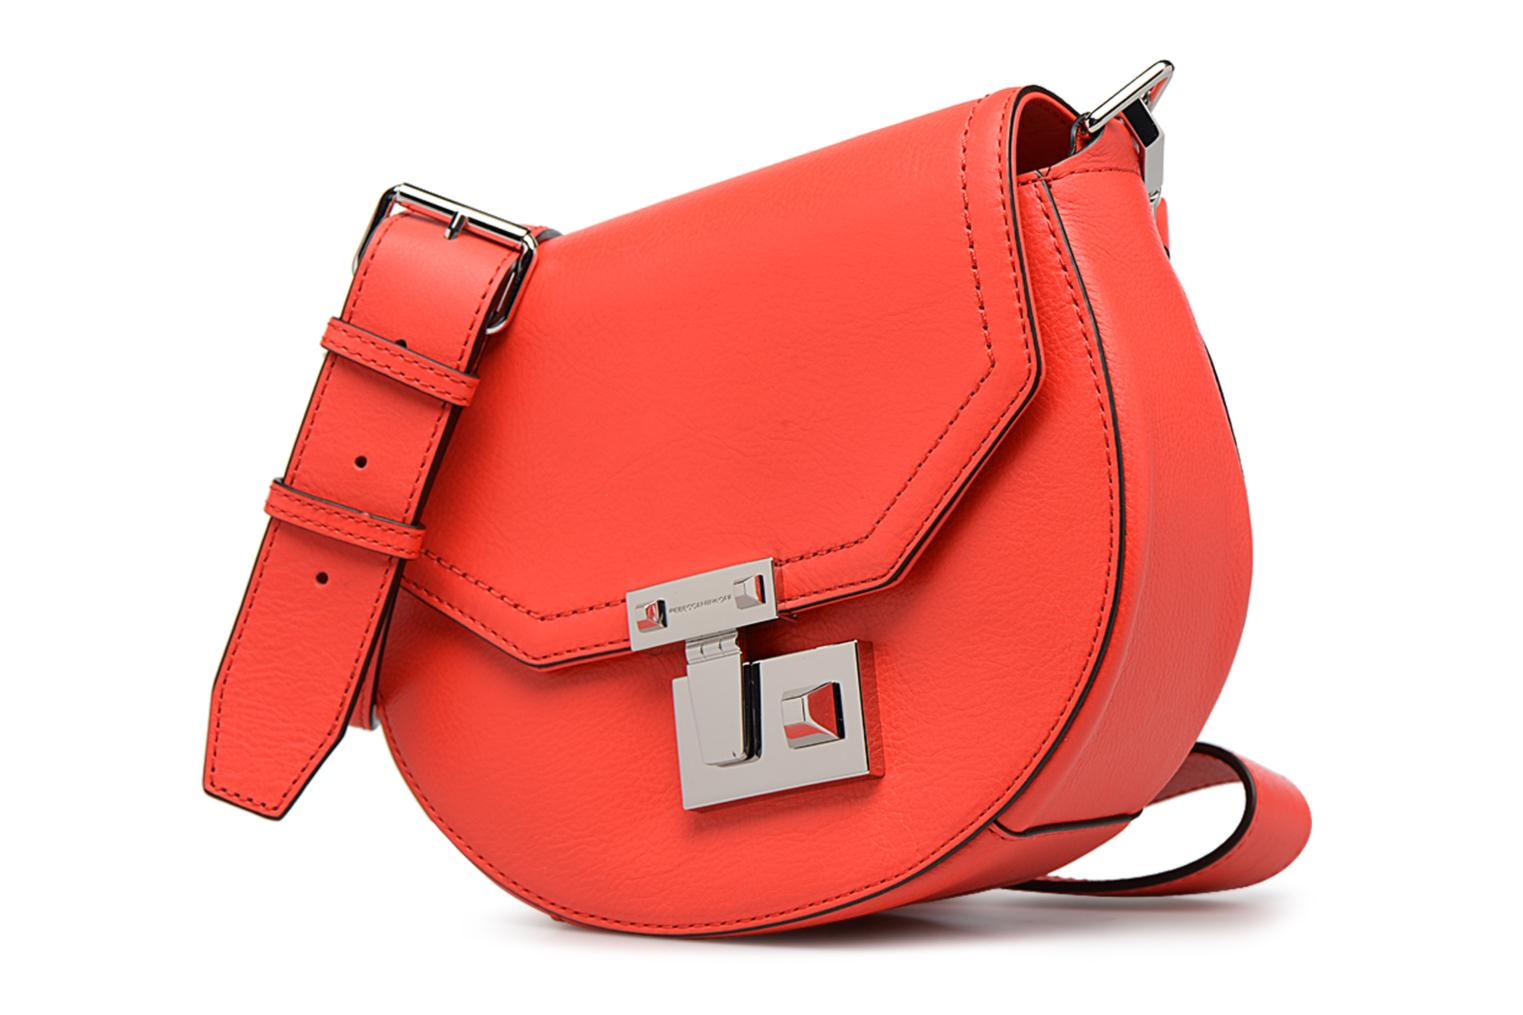 Sacs à main Rebecca Minkoff PARIS SADDLE BAG Orange vue portées chaussures